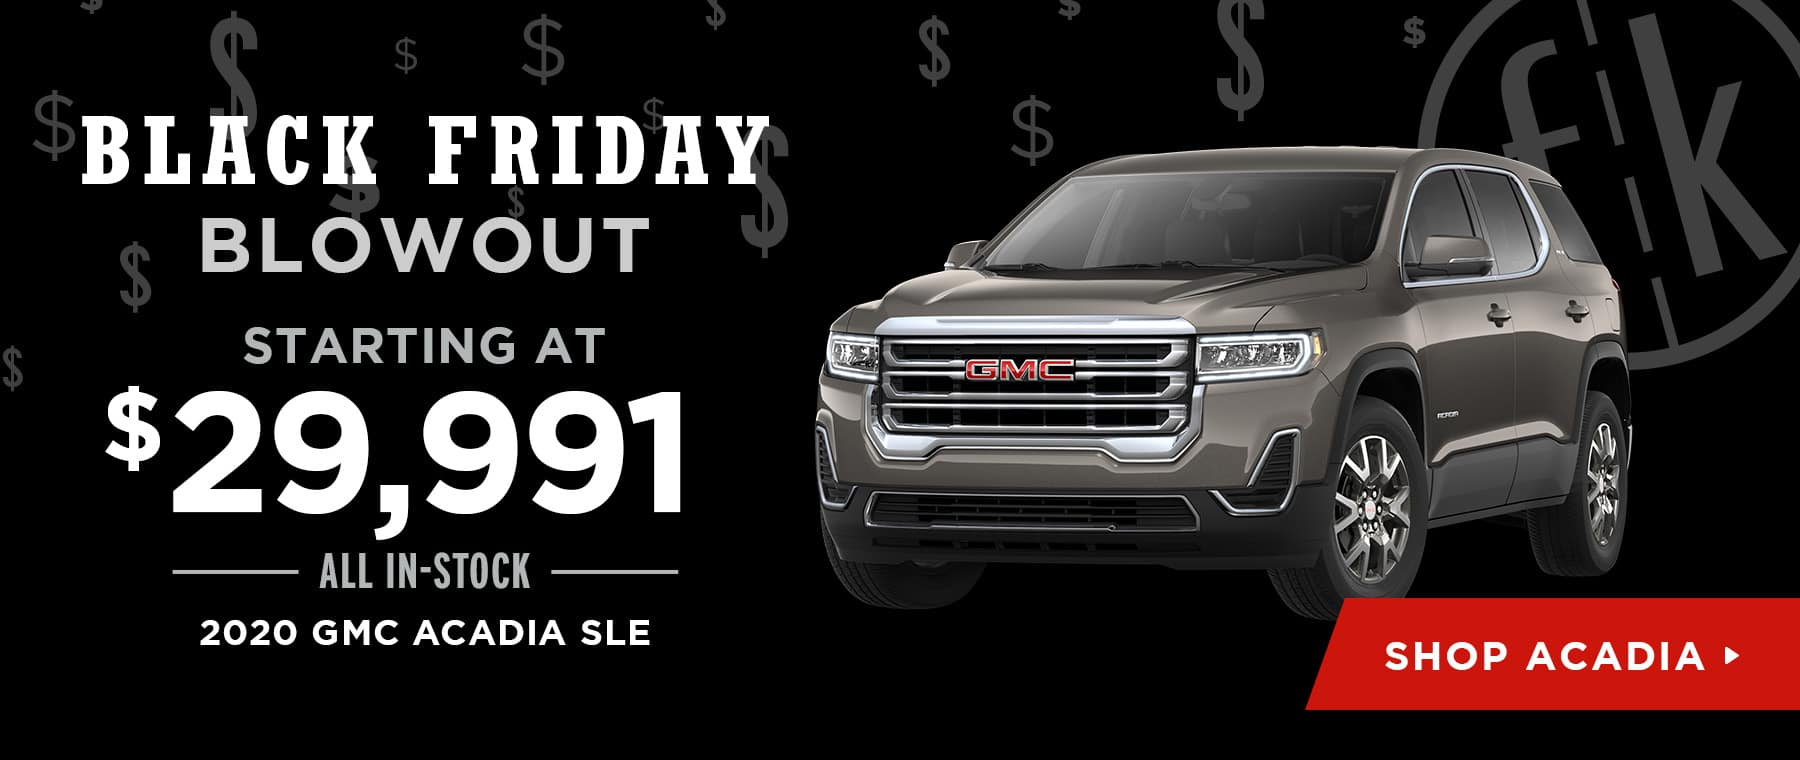 Starting at $29,991 All In-Stock 2020 GMC Acadia SLE